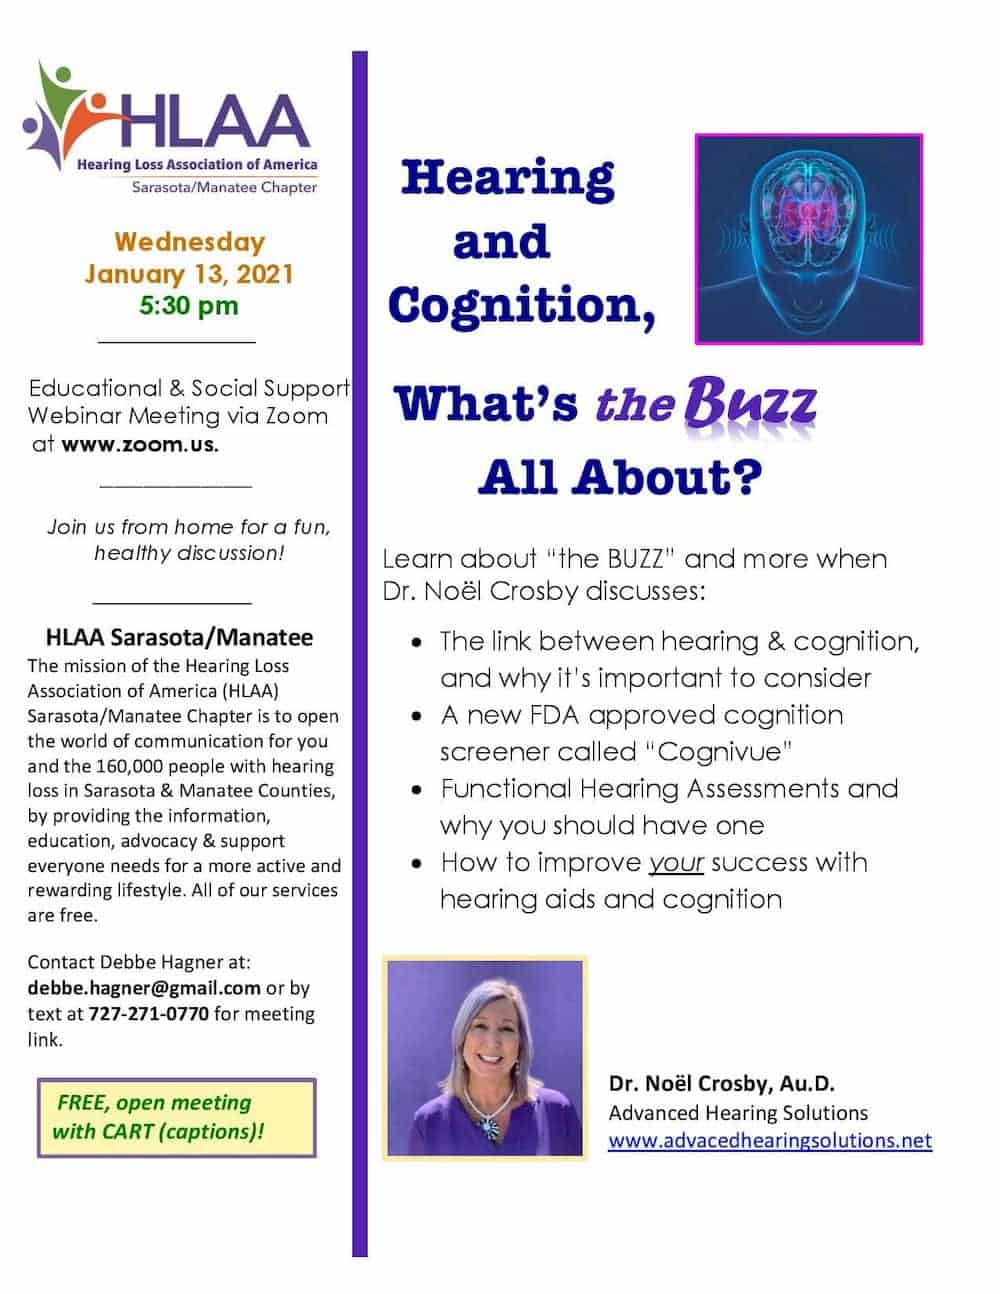 Jan 13 Dr. Noël Crosby Hearing and Cognition, Educational & Social Support What's the Buzz All About?